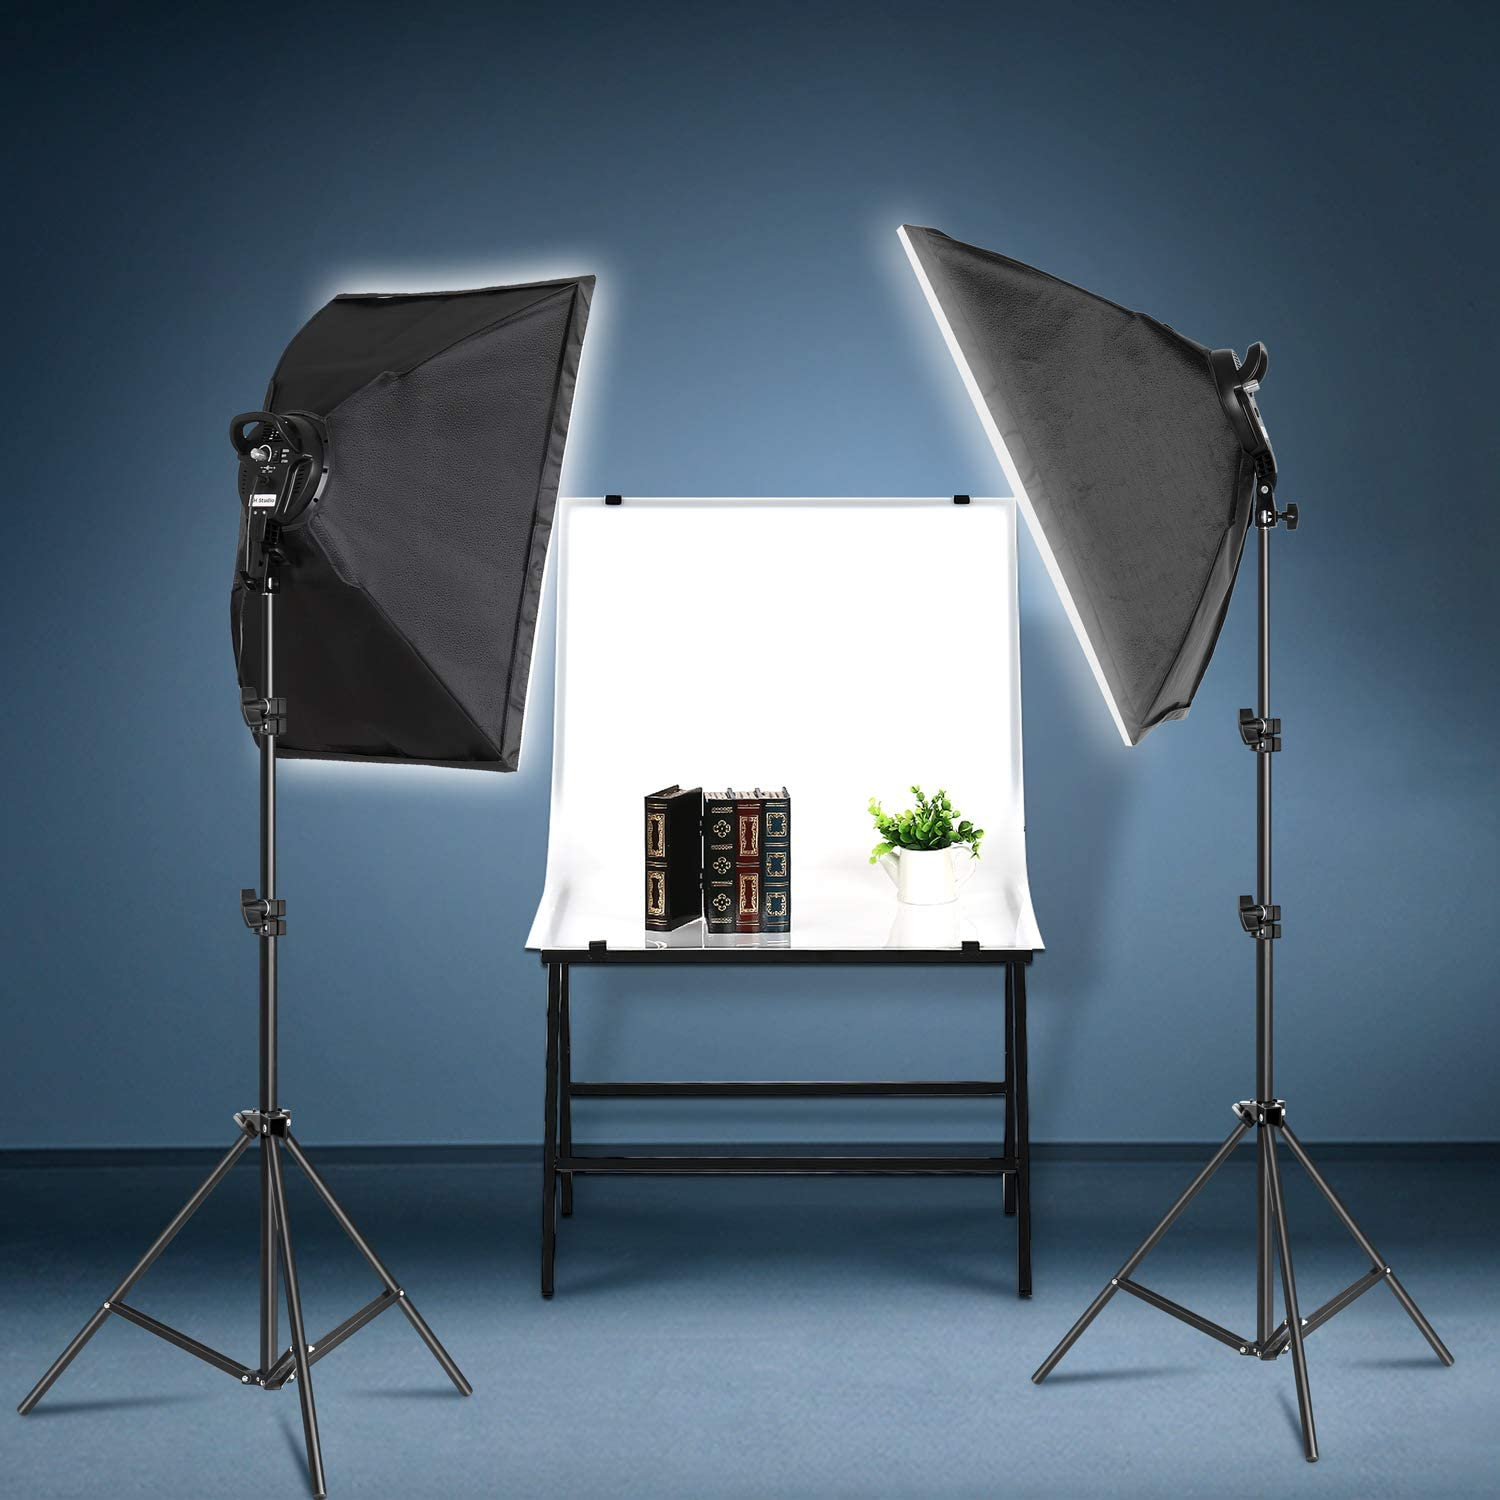 SH 2Set 20X28 Softbox Photography Lighting Kit 135W Continuous Lighting System Photo Studio Equipment Photo Model Portraits Shooting Box E27 Video Lighting Bulb